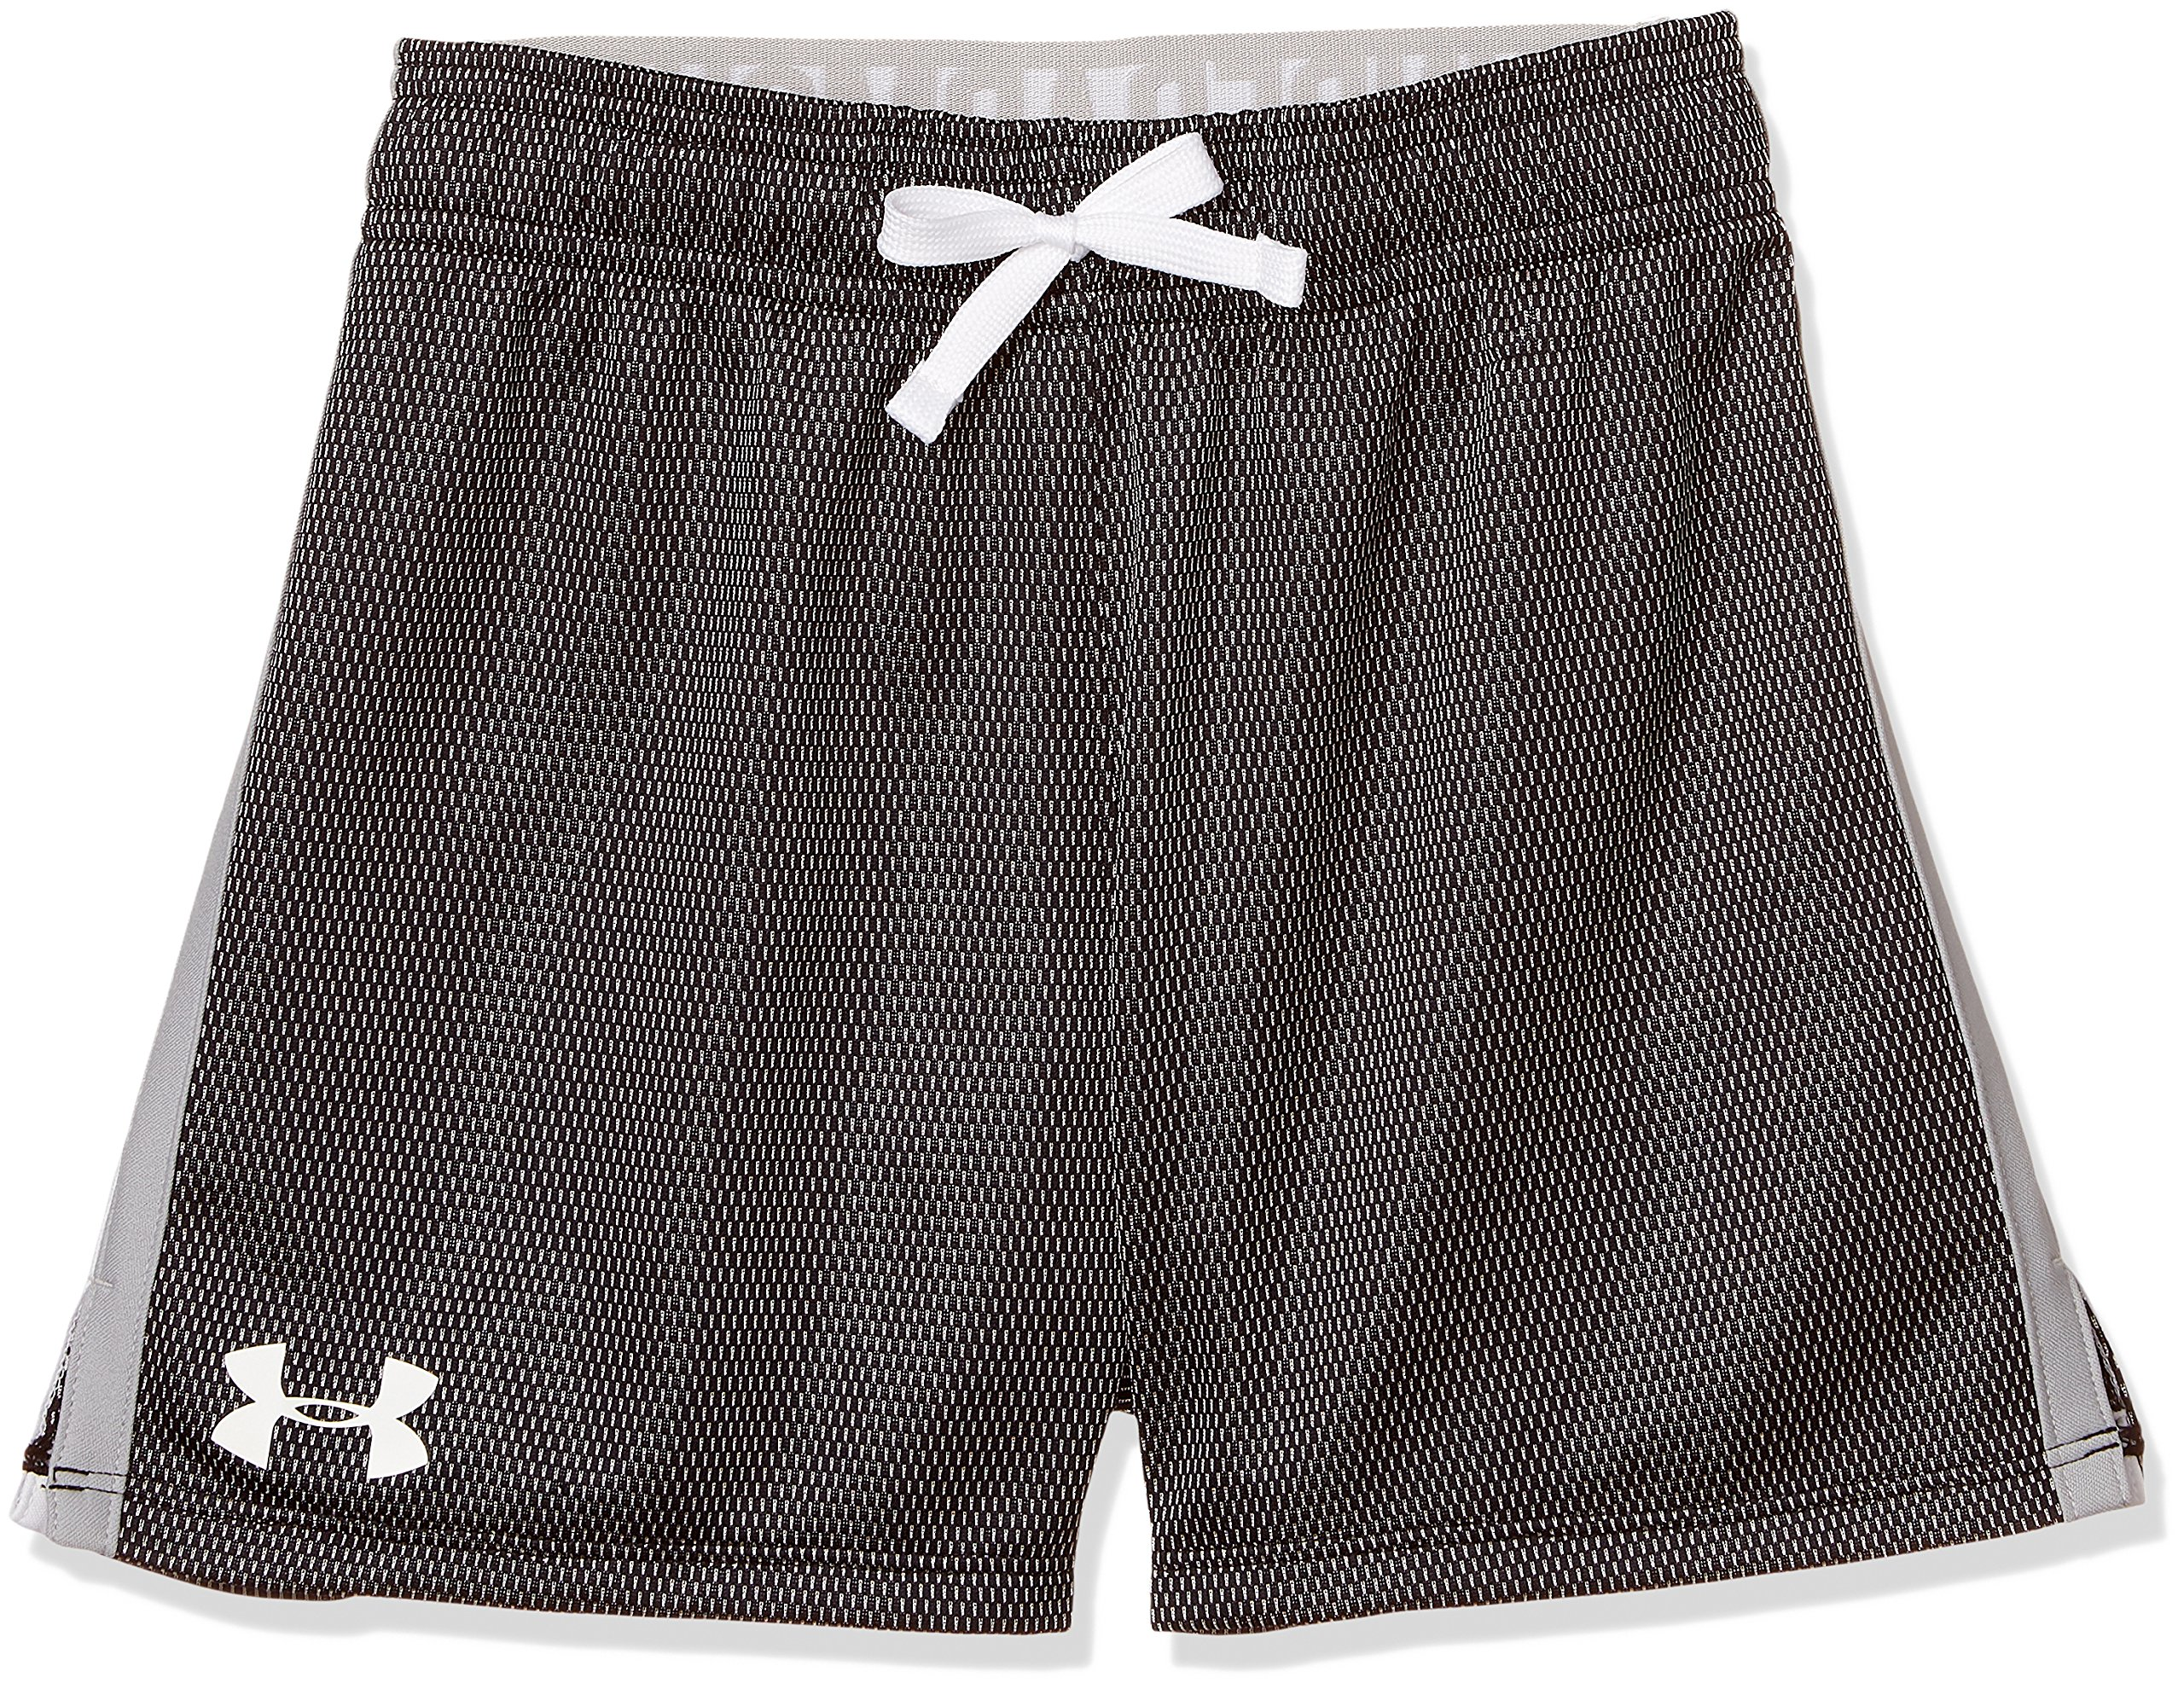 Under Armour Girls' Center Spot Shorts, Black /White, Youth X-Large by Under Armour